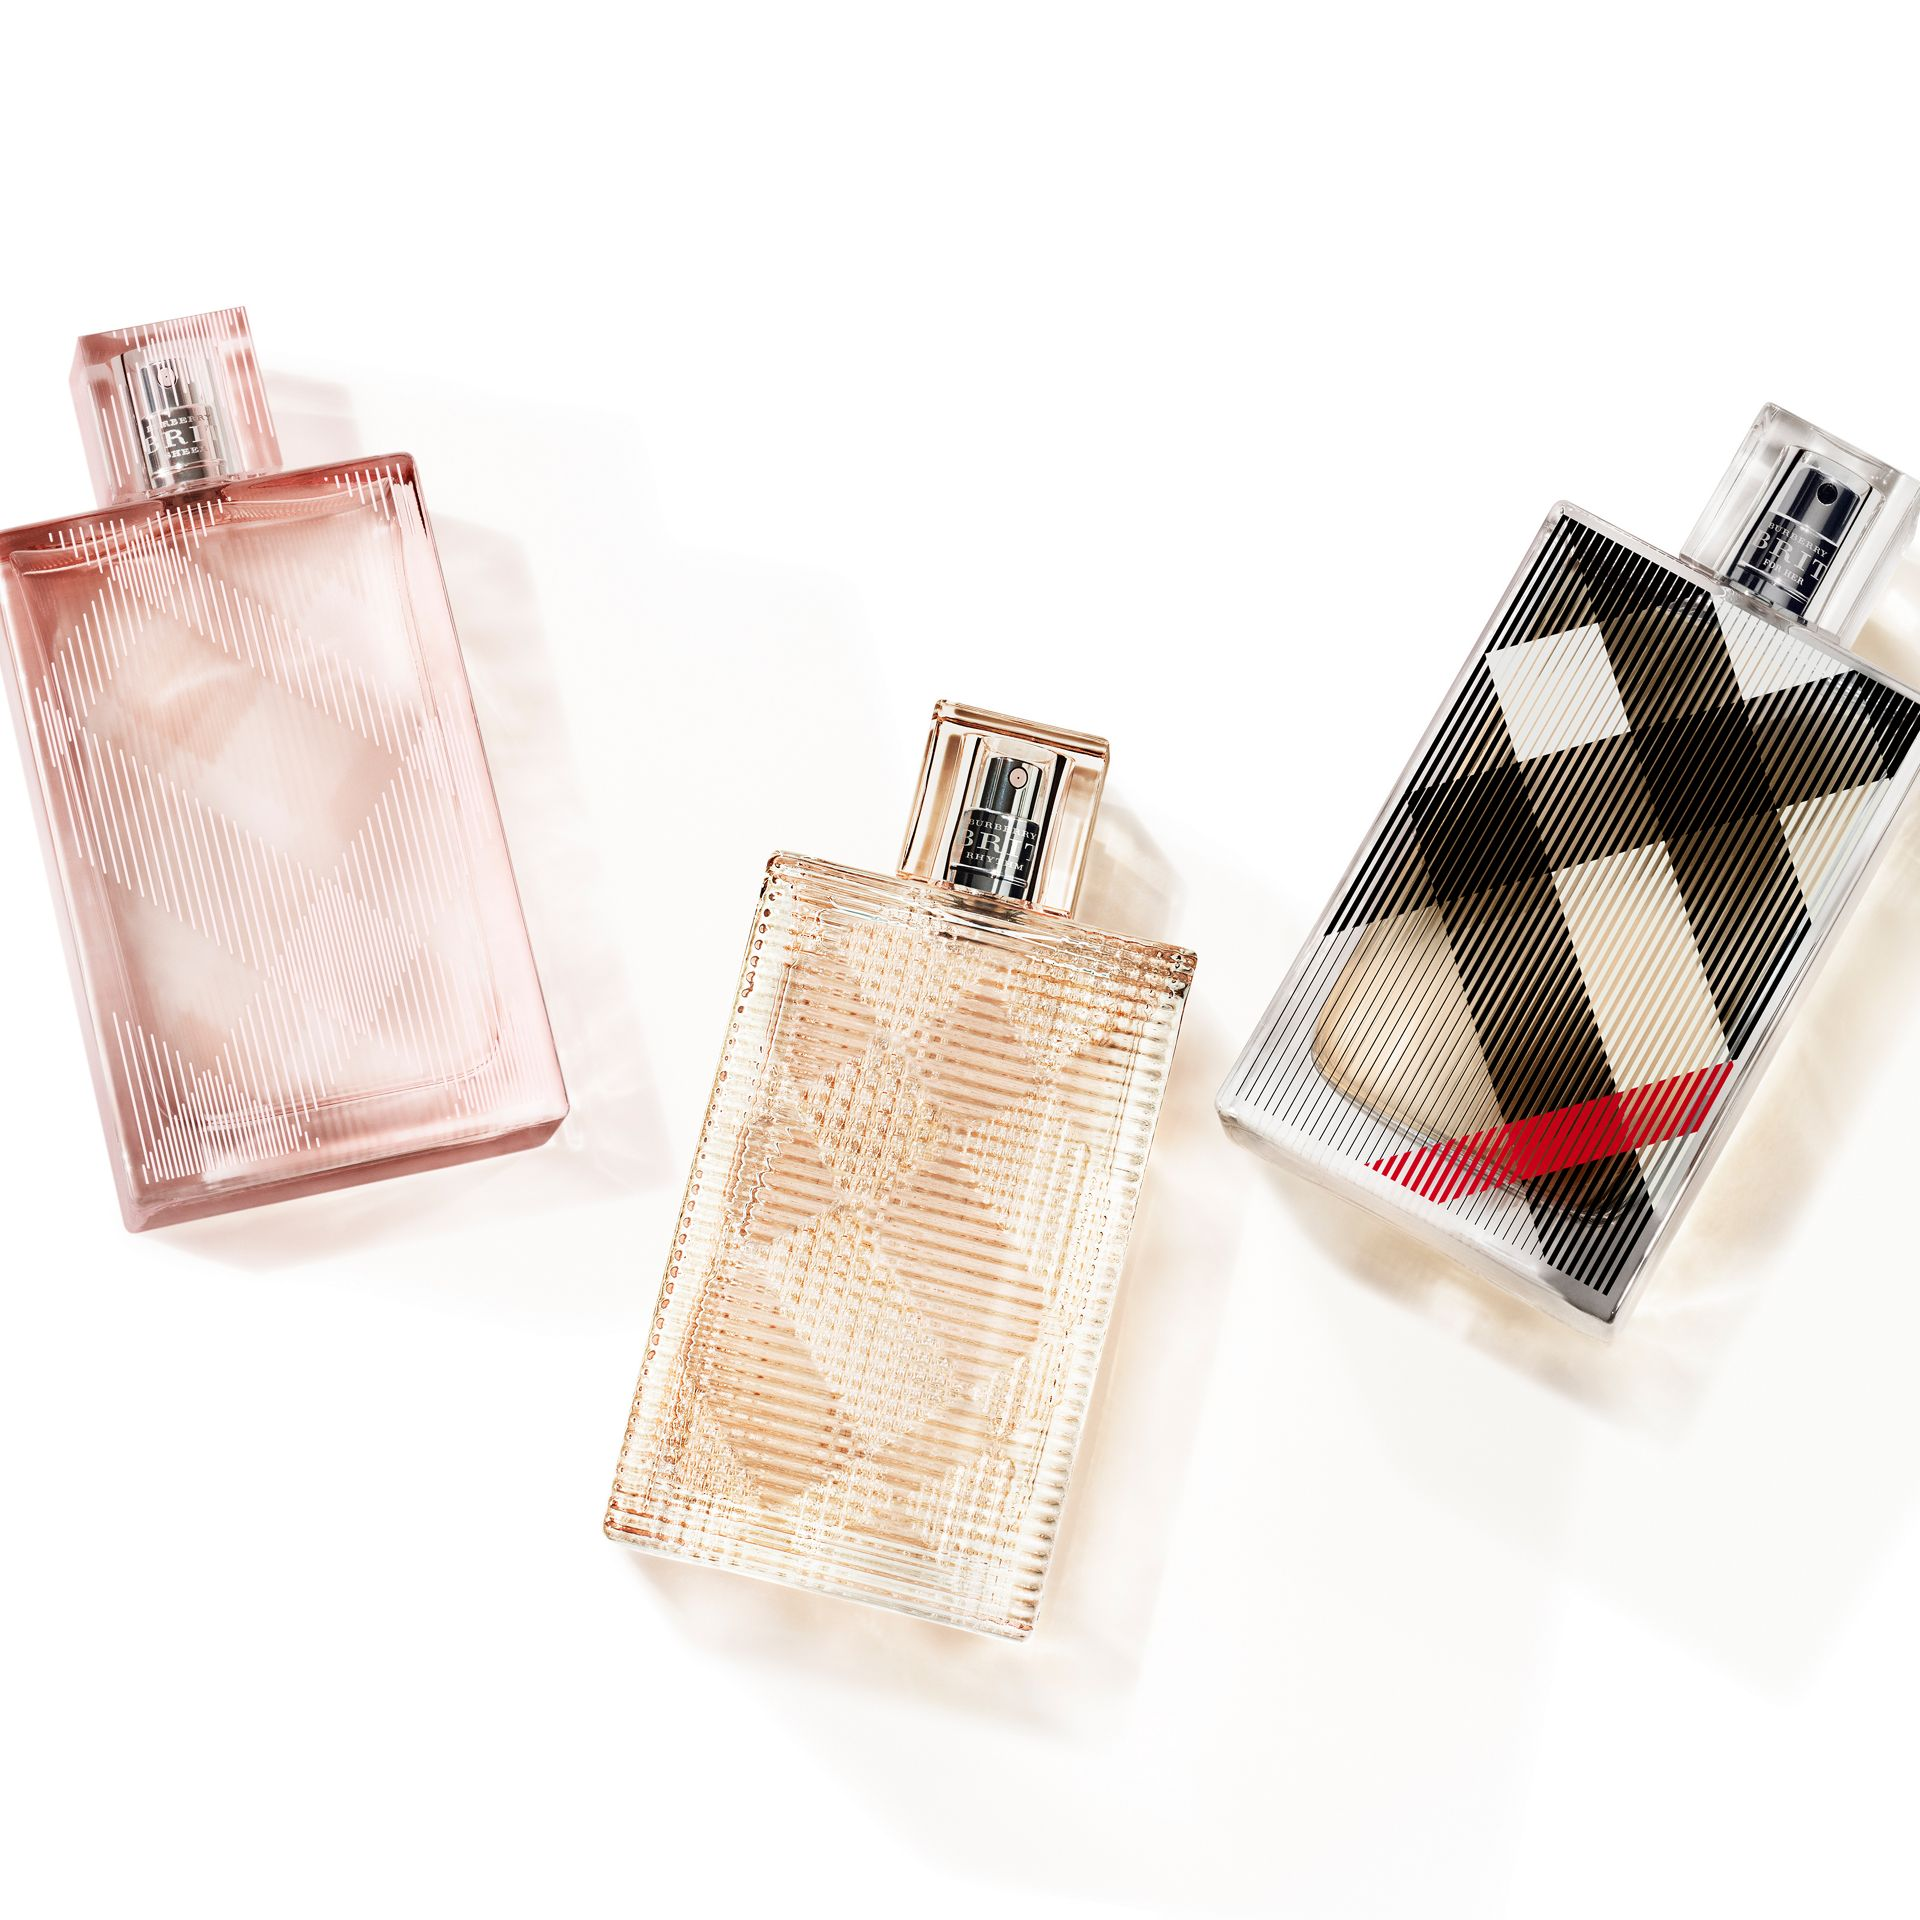 Burberry Brit Sheer Eau de Toilette 30ml - Women | Burberry Canada - gallery image 3